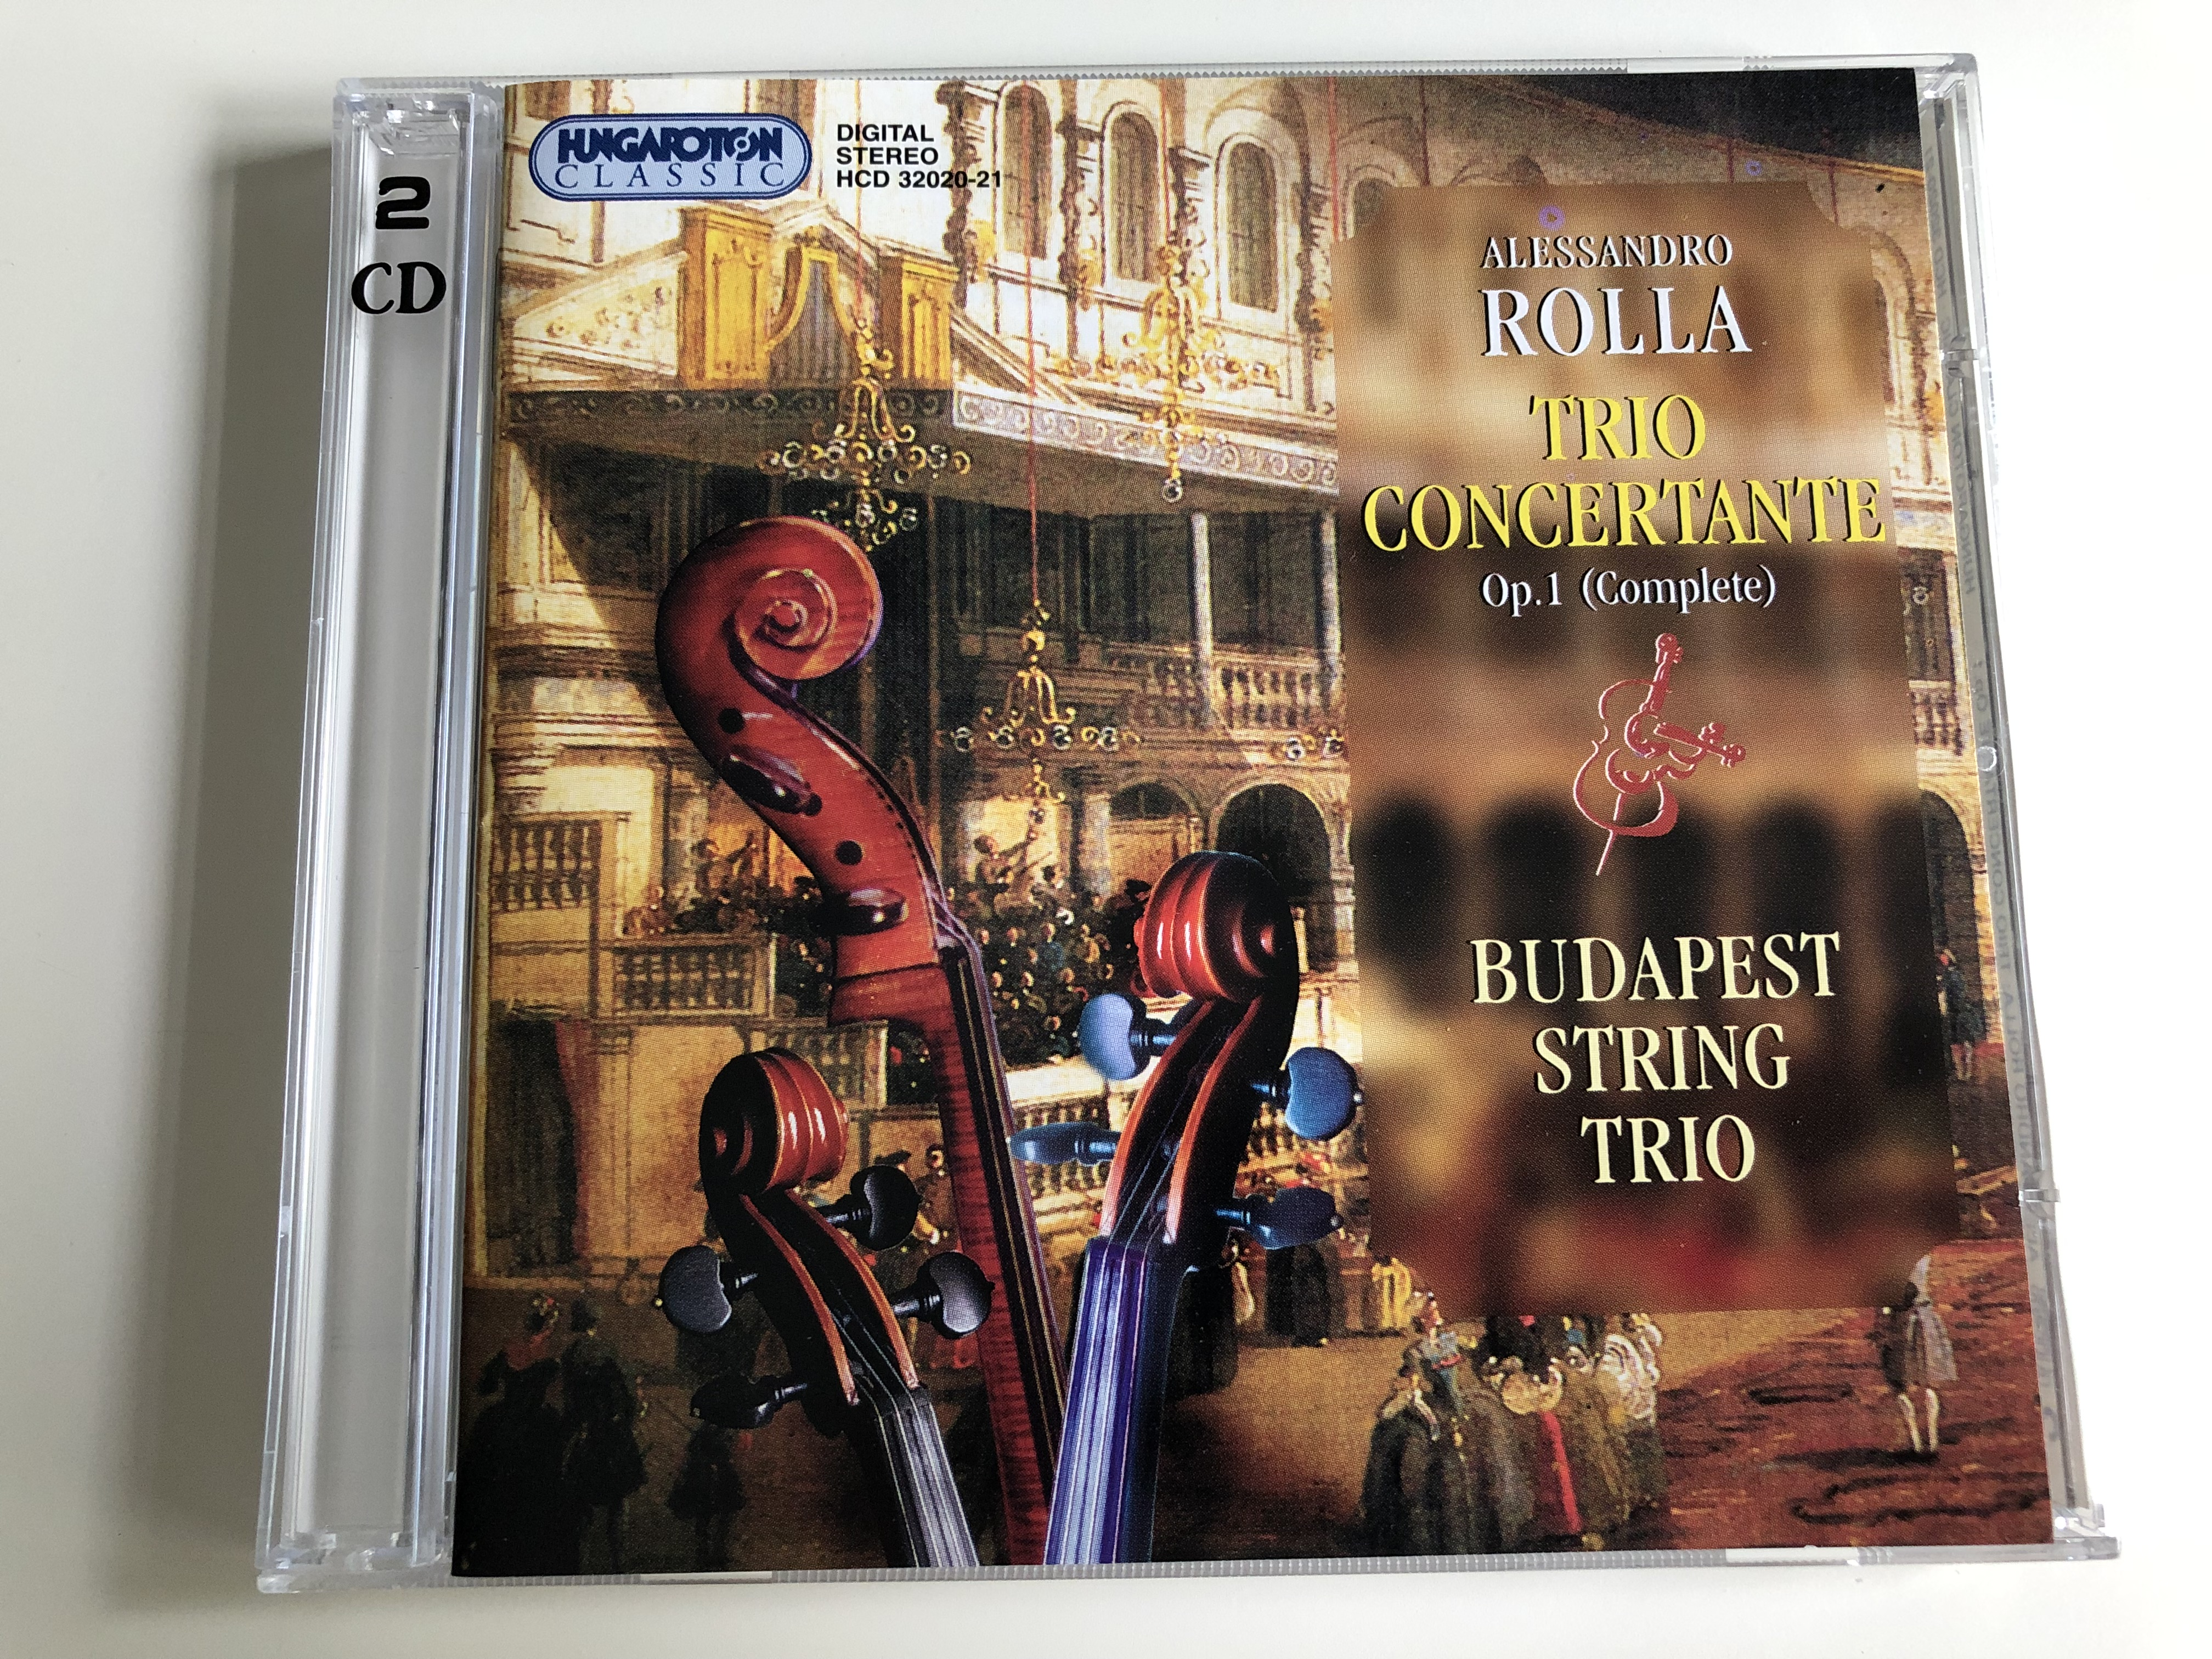 alessandro-rolla-trio-concertante-op.-1-complete-audio-cd-set-2002-budapest-string-trio-ferenc-kiss-violin-s-ndor-papp-viola-bal-zs-k-ntor-cello-hungaroton-classic-hcd-32020-21-1-.jpg